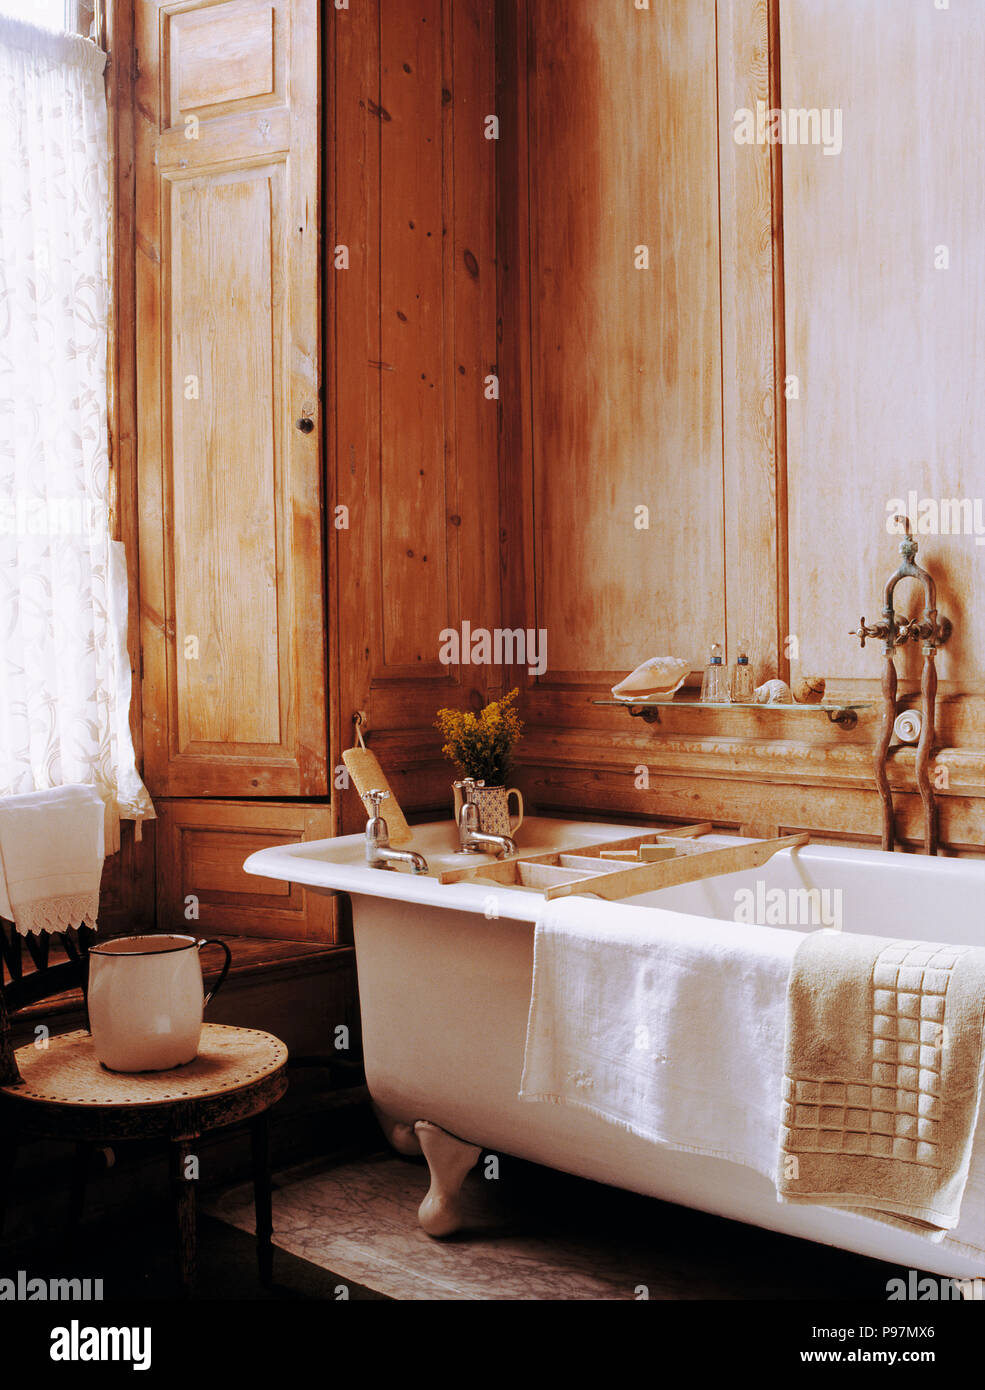 Wooden panelling and clawfoot bath in tradtional country bathroom ...